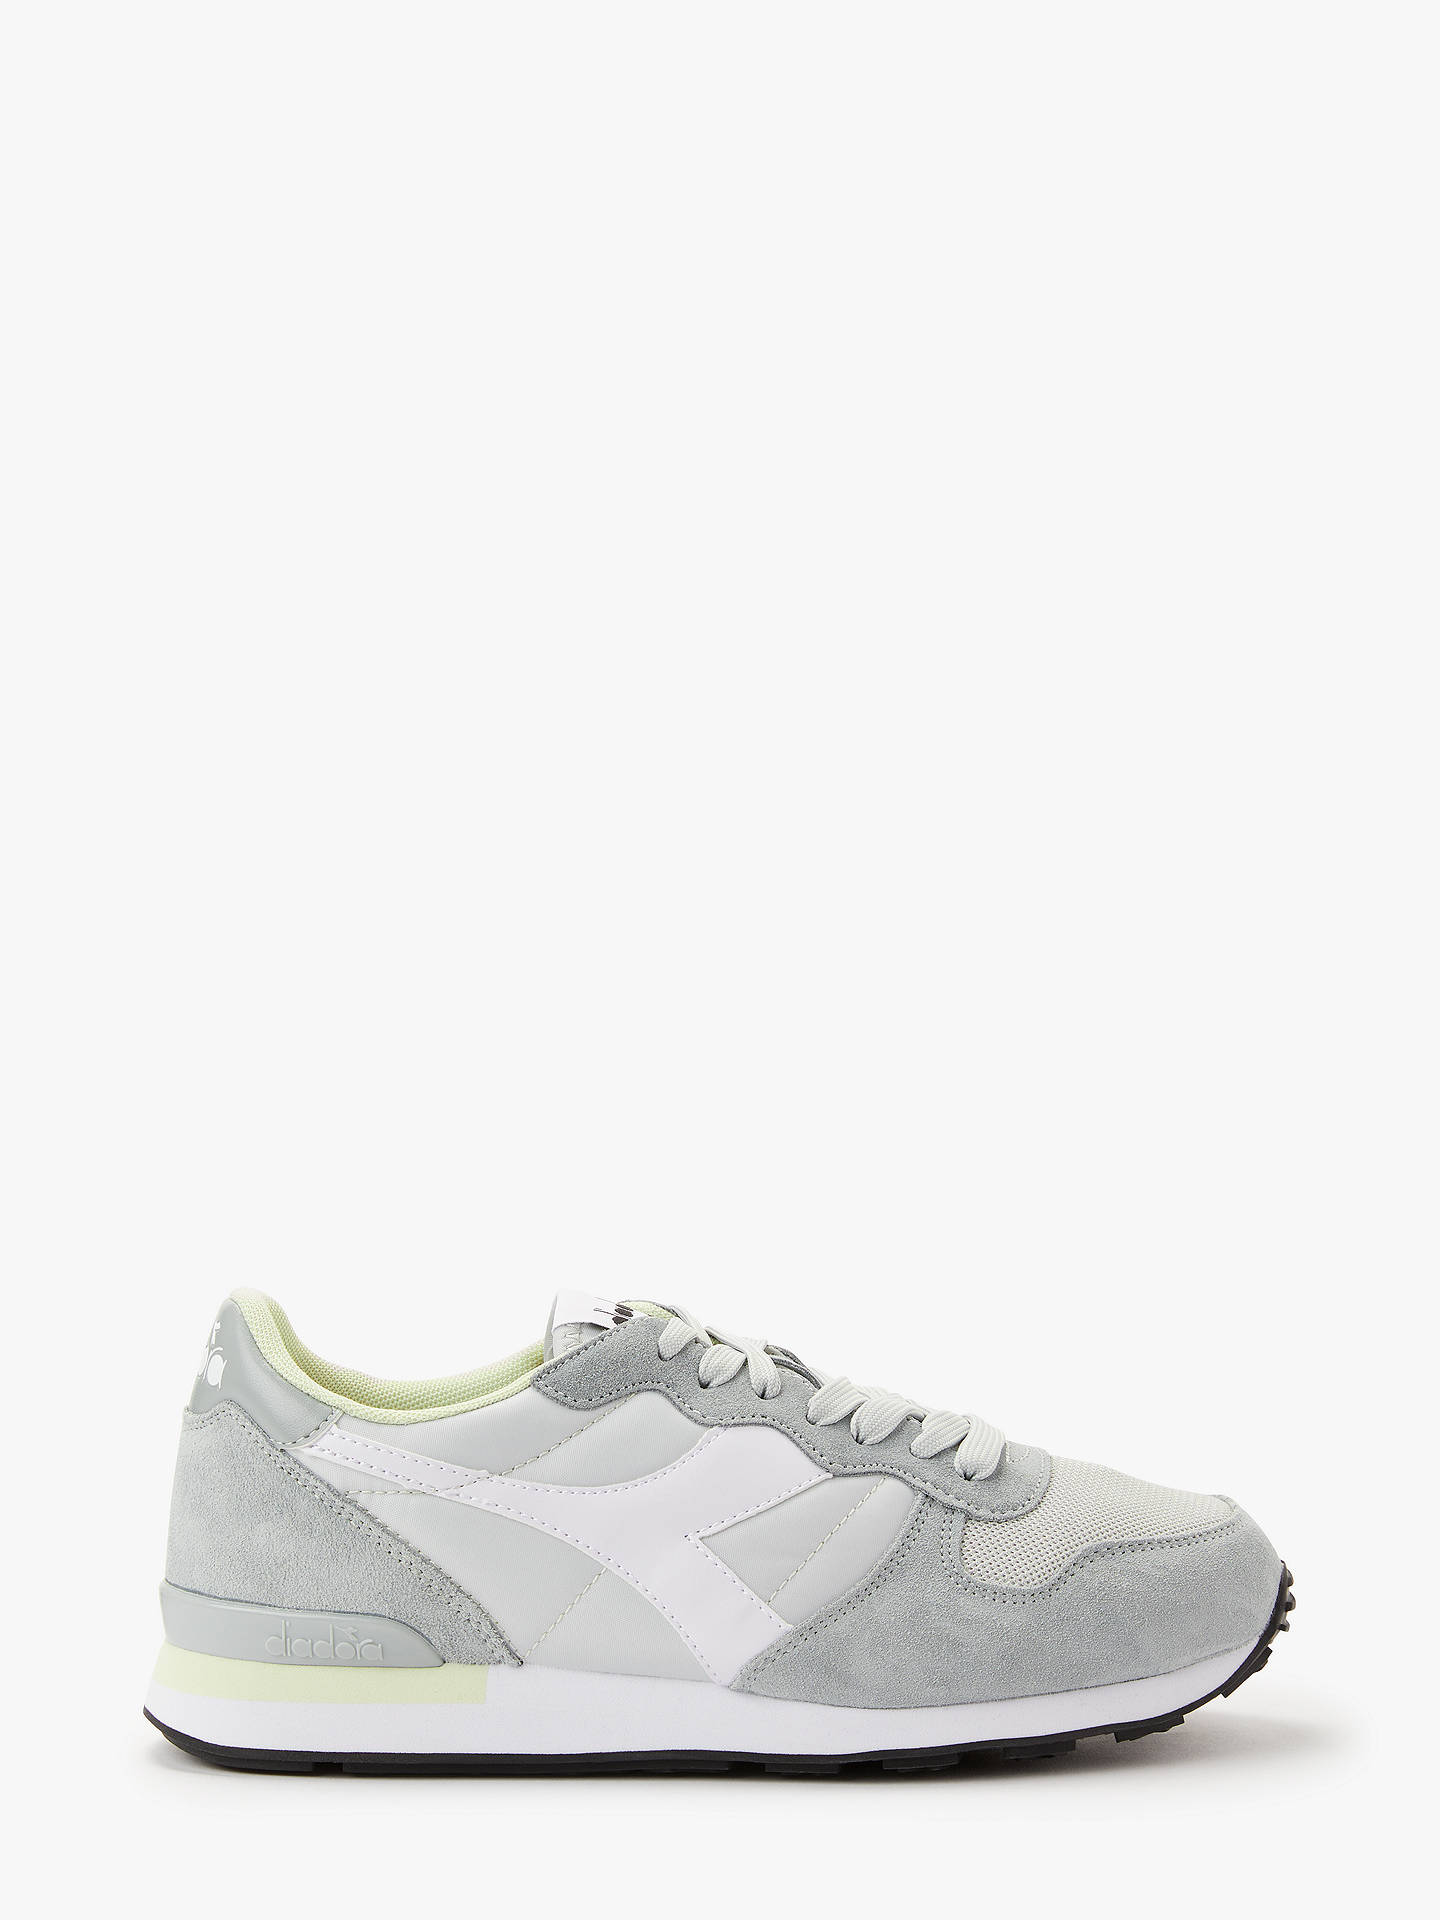 d22bbc80eb Diadora Camaro Lace Up Trainers, High Rise/Limestone at John Lewis ...